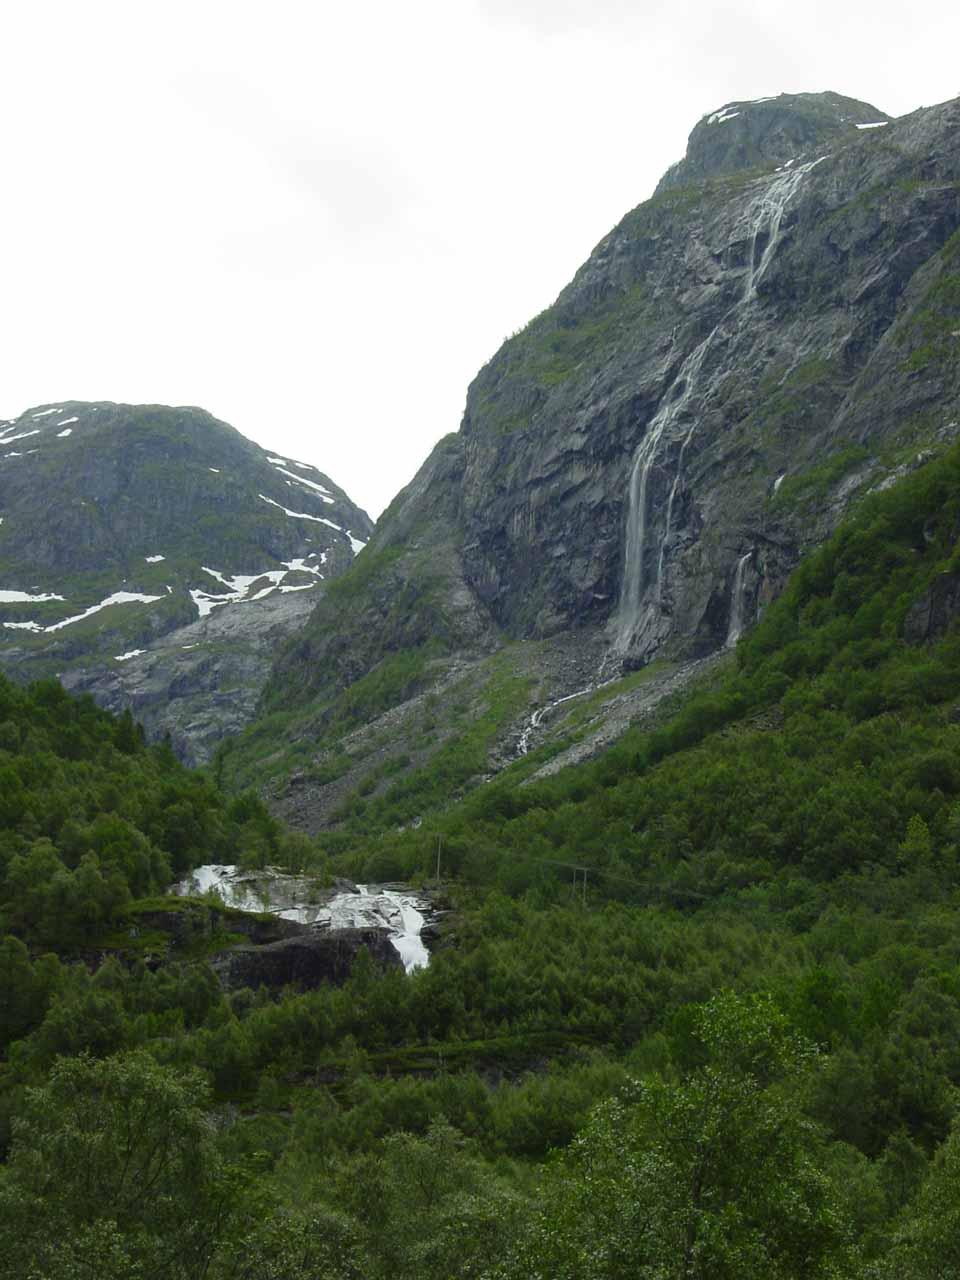 Context of Kyrfossen with Røykjafossen below it